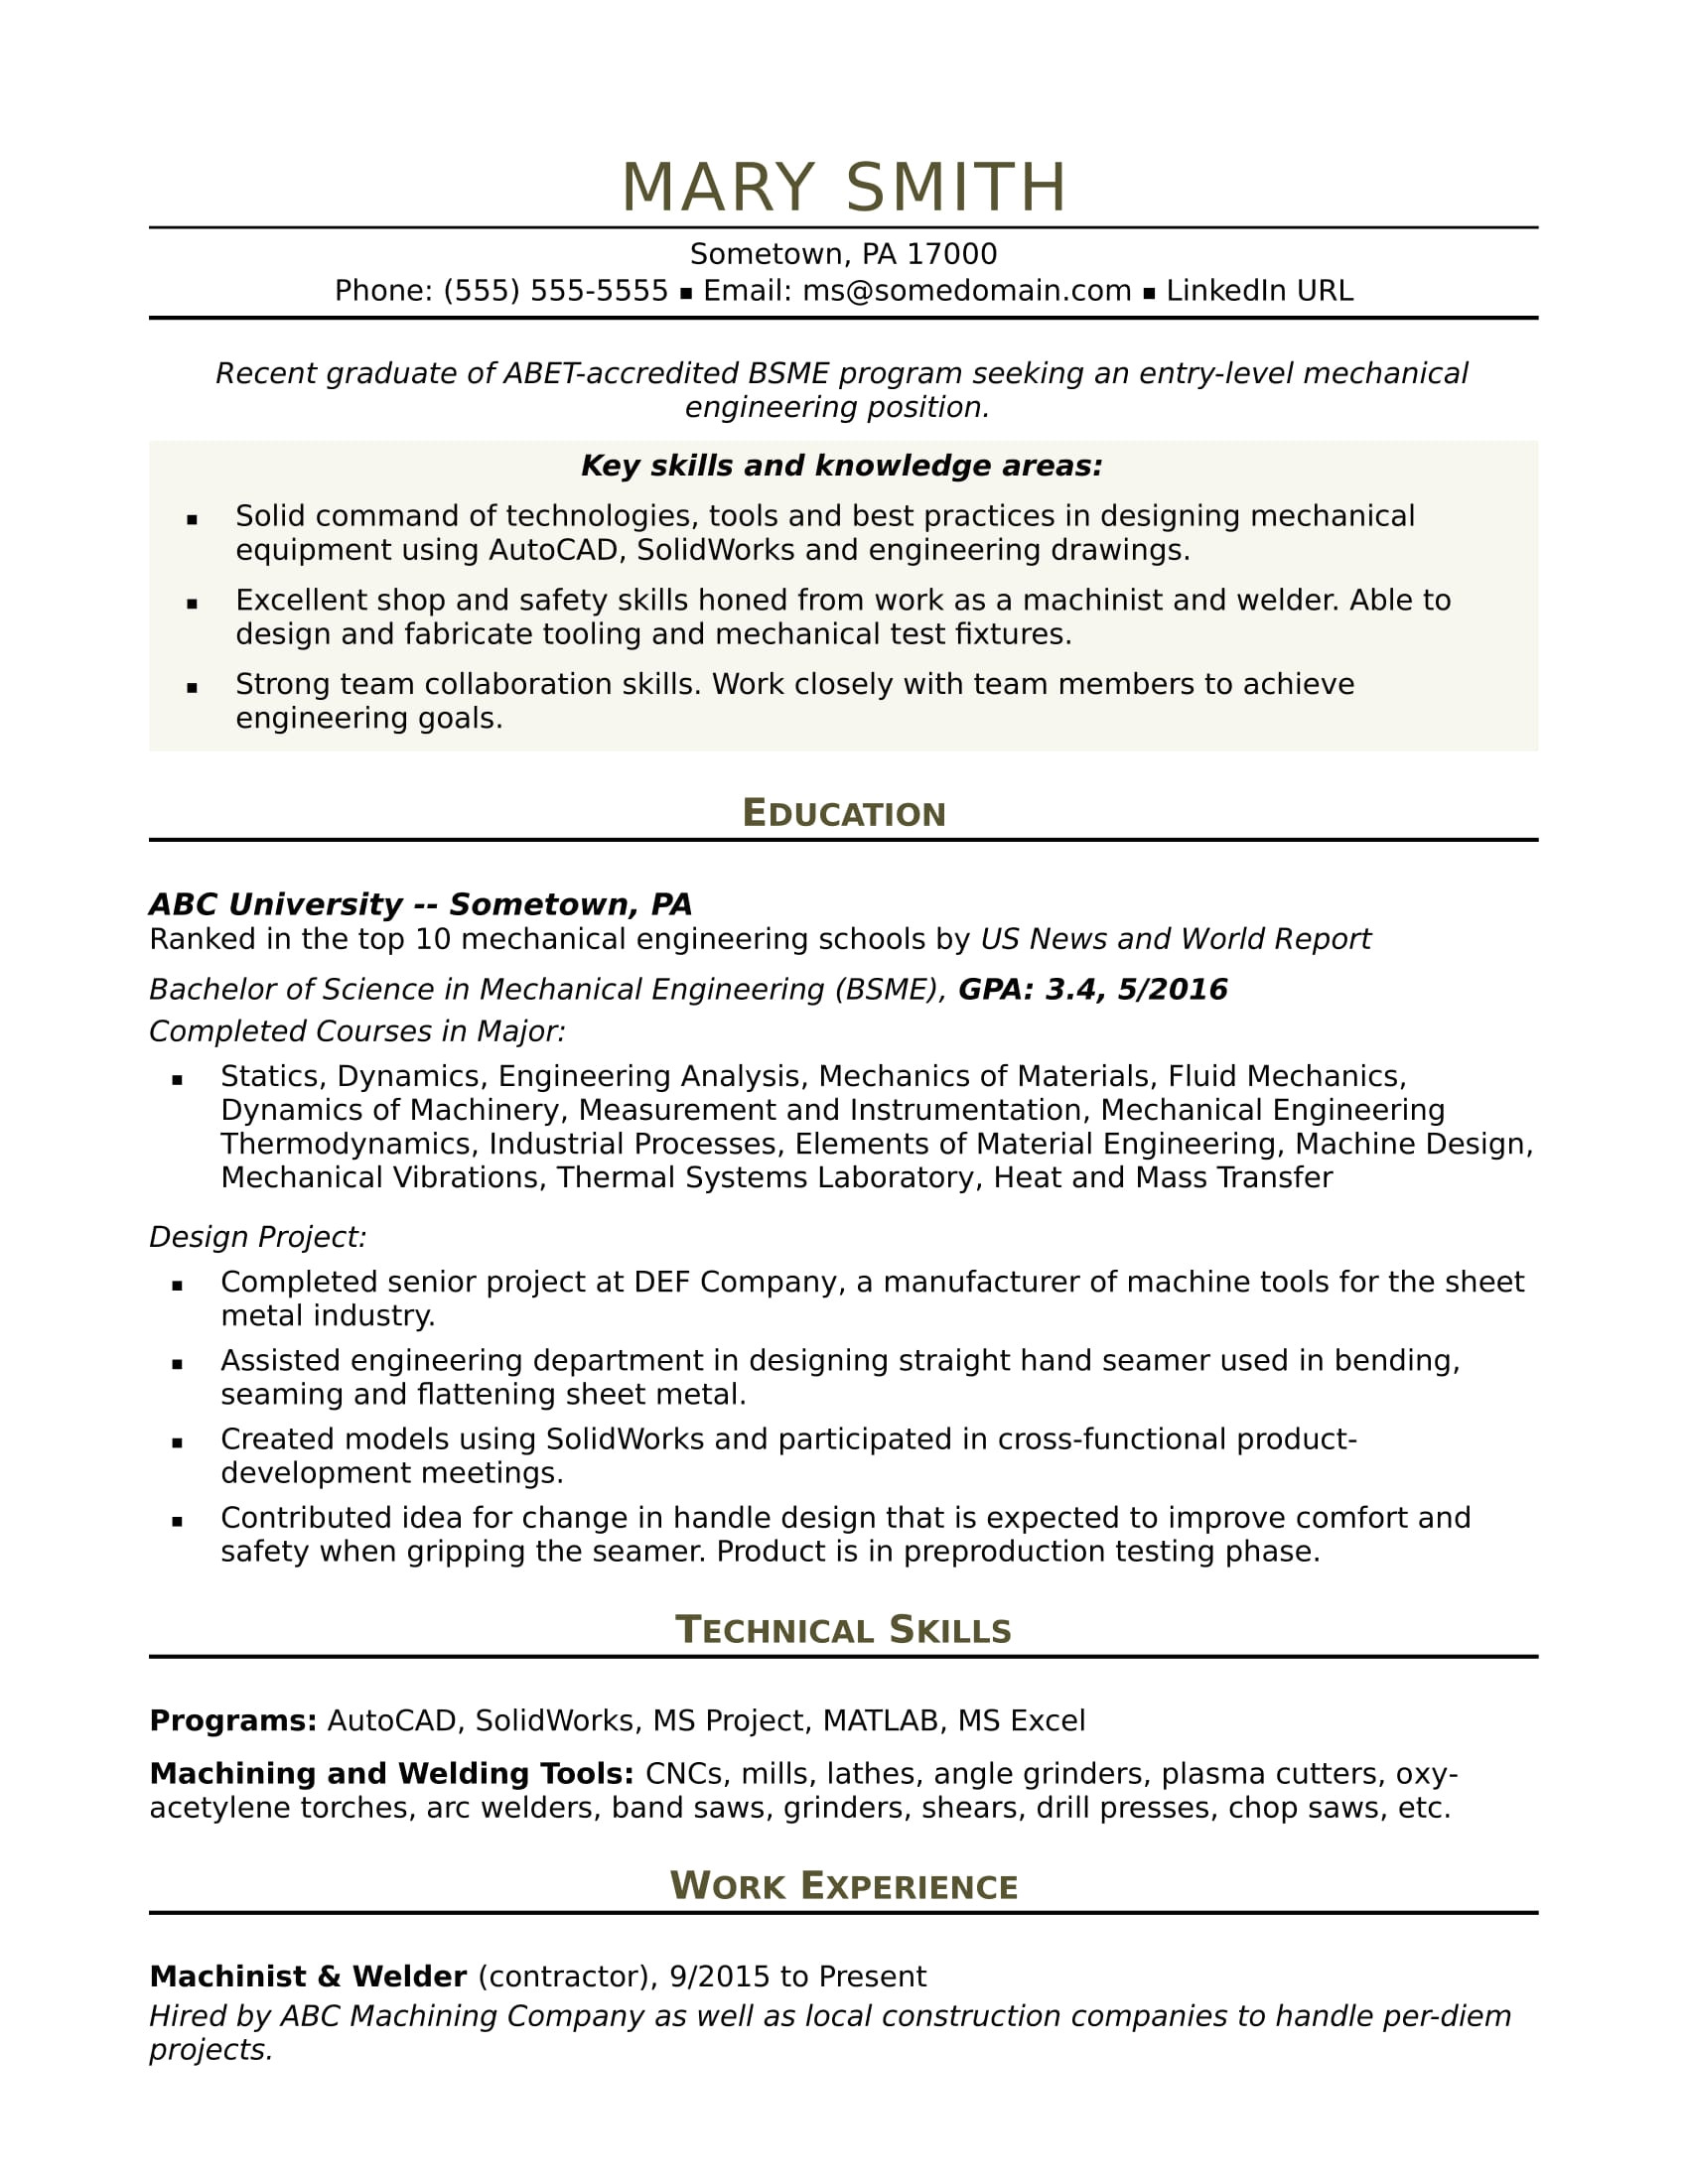 Sample Resume for Applying Ms In Us Sample Resume for An Entry Level Mechanical Engineer